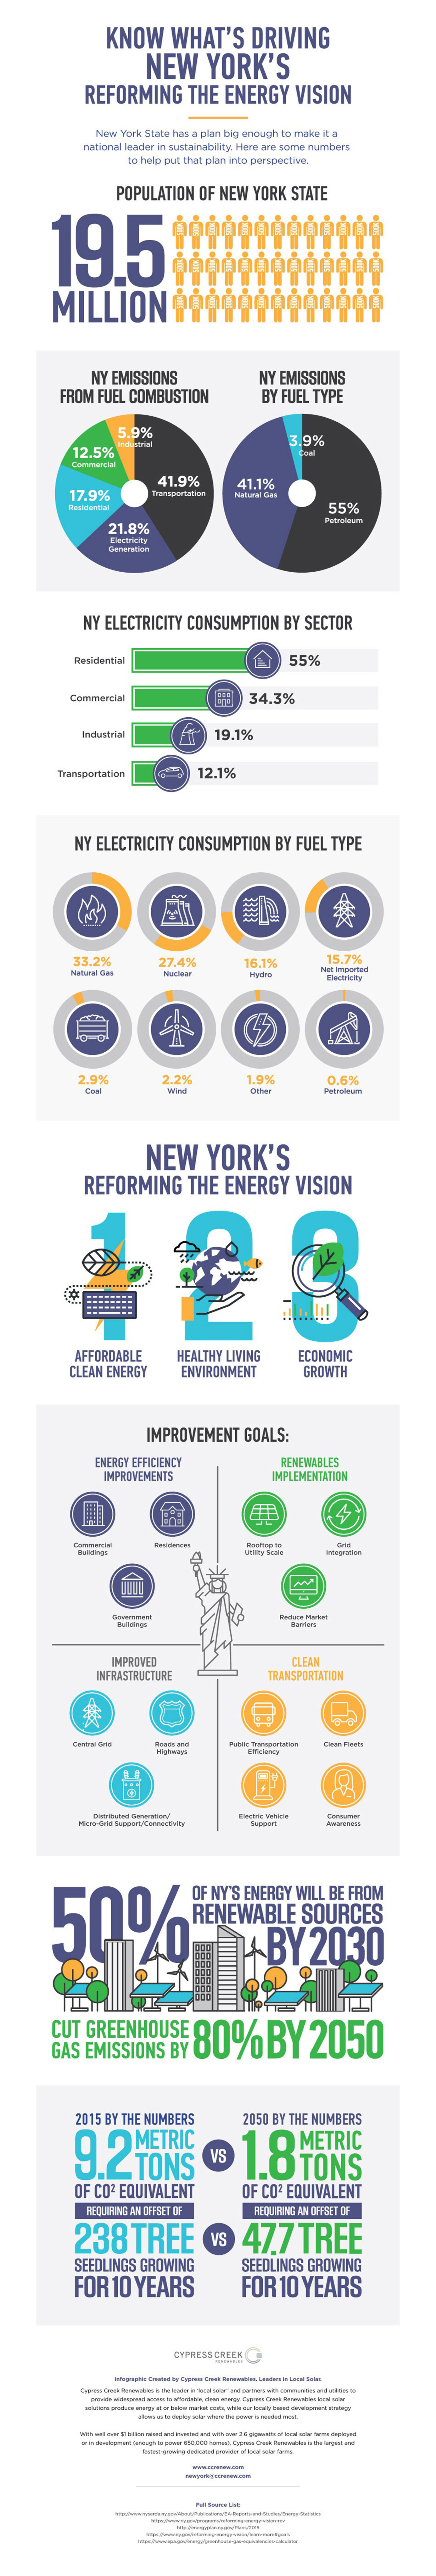 Infographic explaining New York's Reforming Energy Vision initiative, outlining NY population, energy usage, and more.